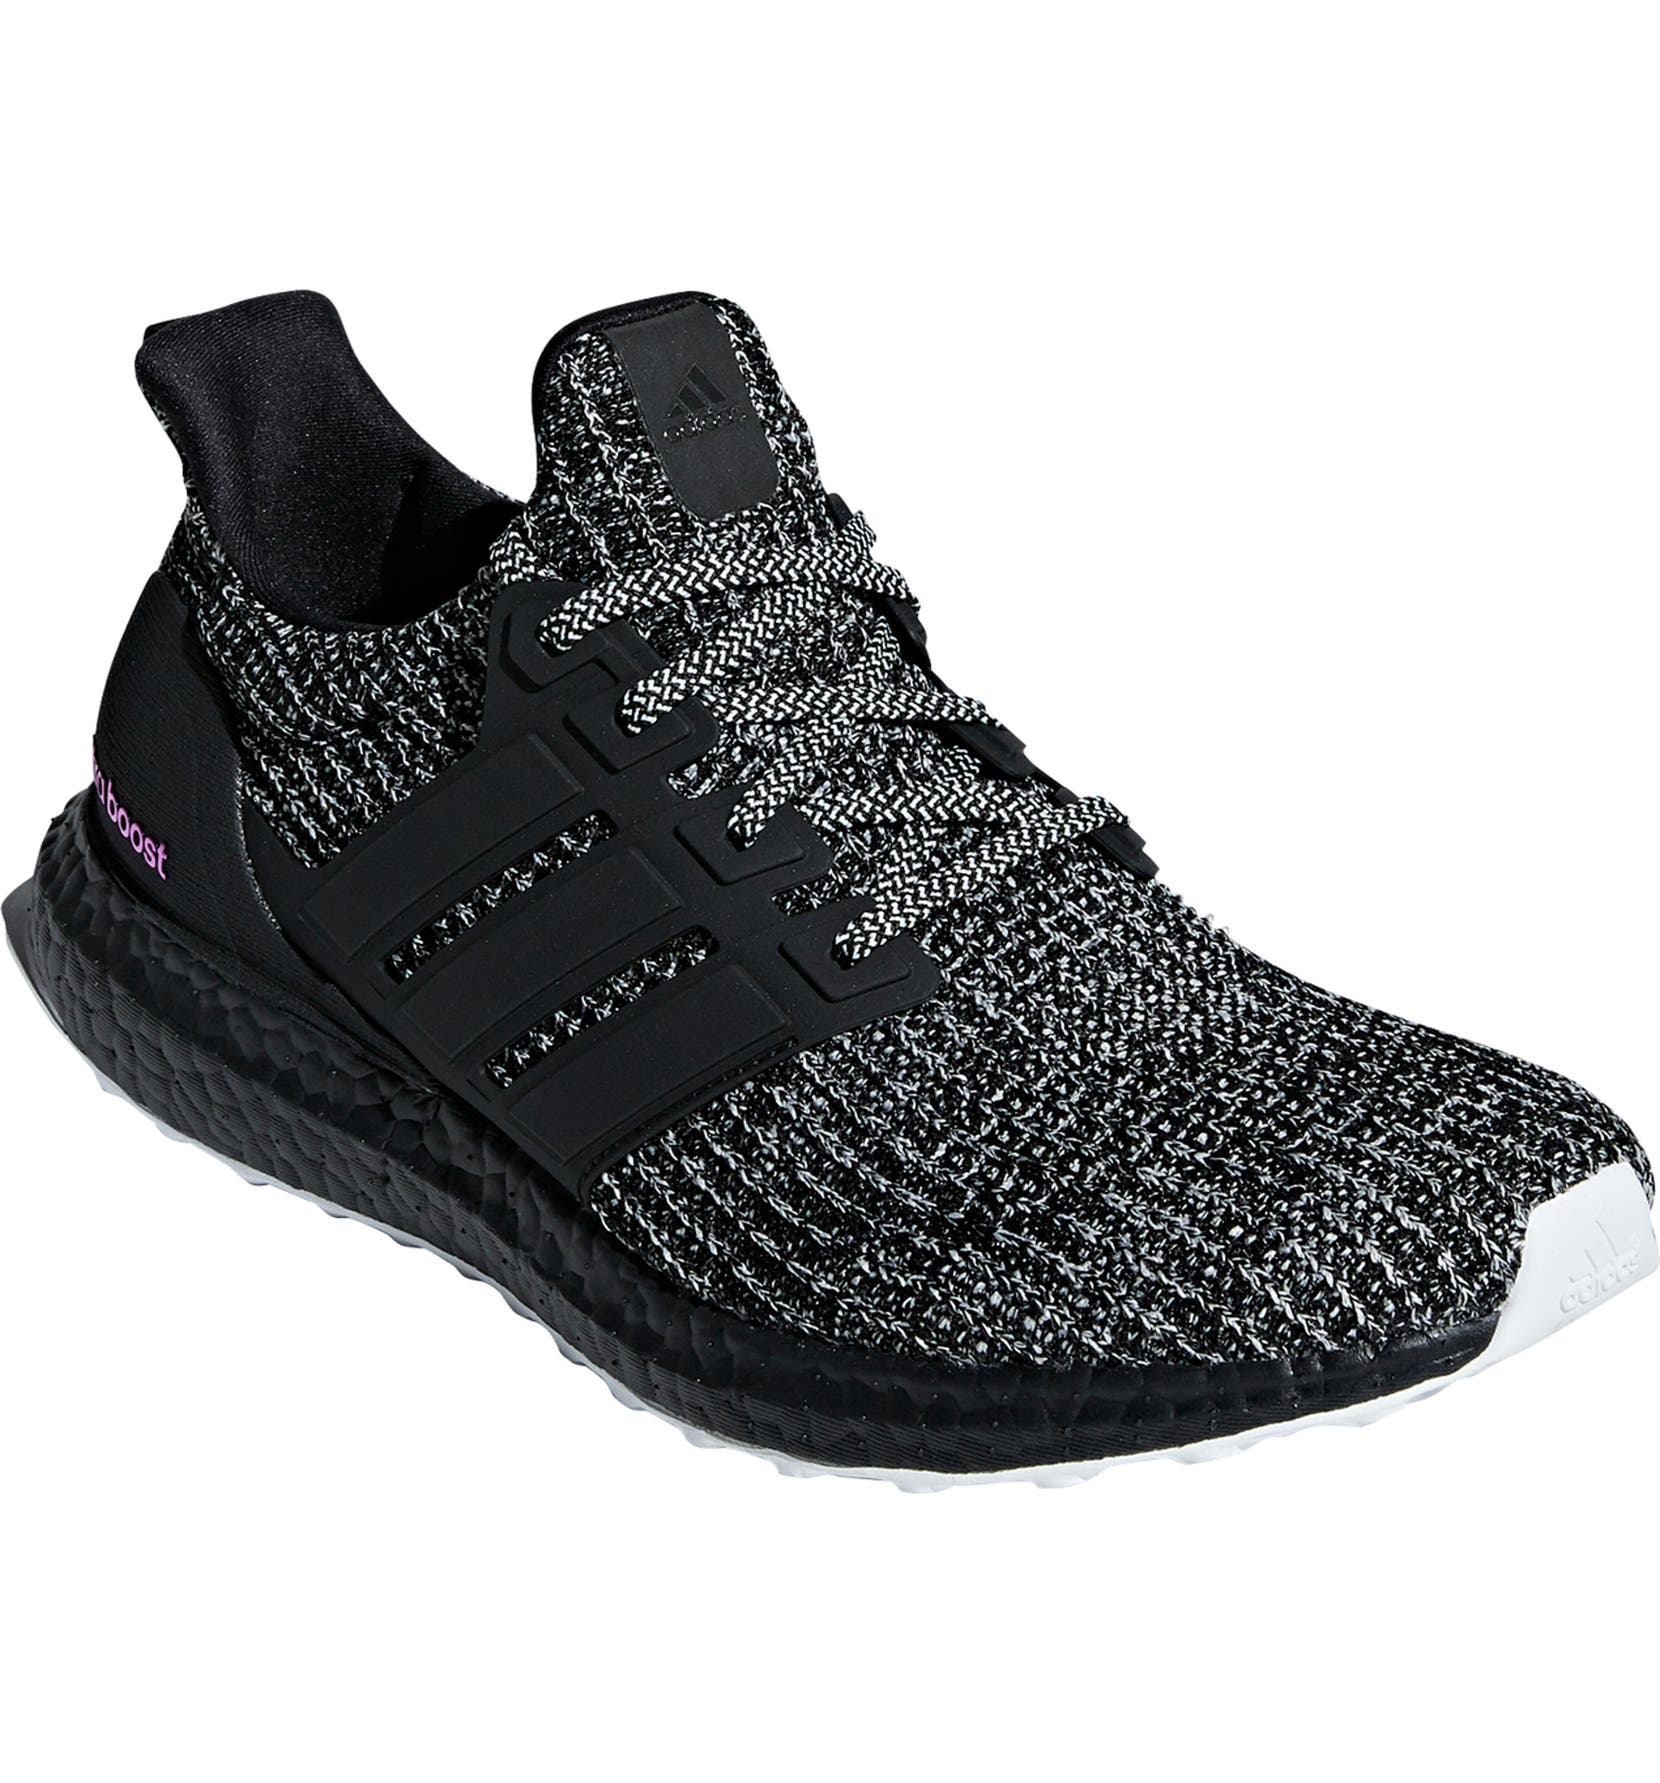 adidas adidas adidas 'UltraBoost' 'UltraBoost' adidas Running zapatos (Hombre 502ae6